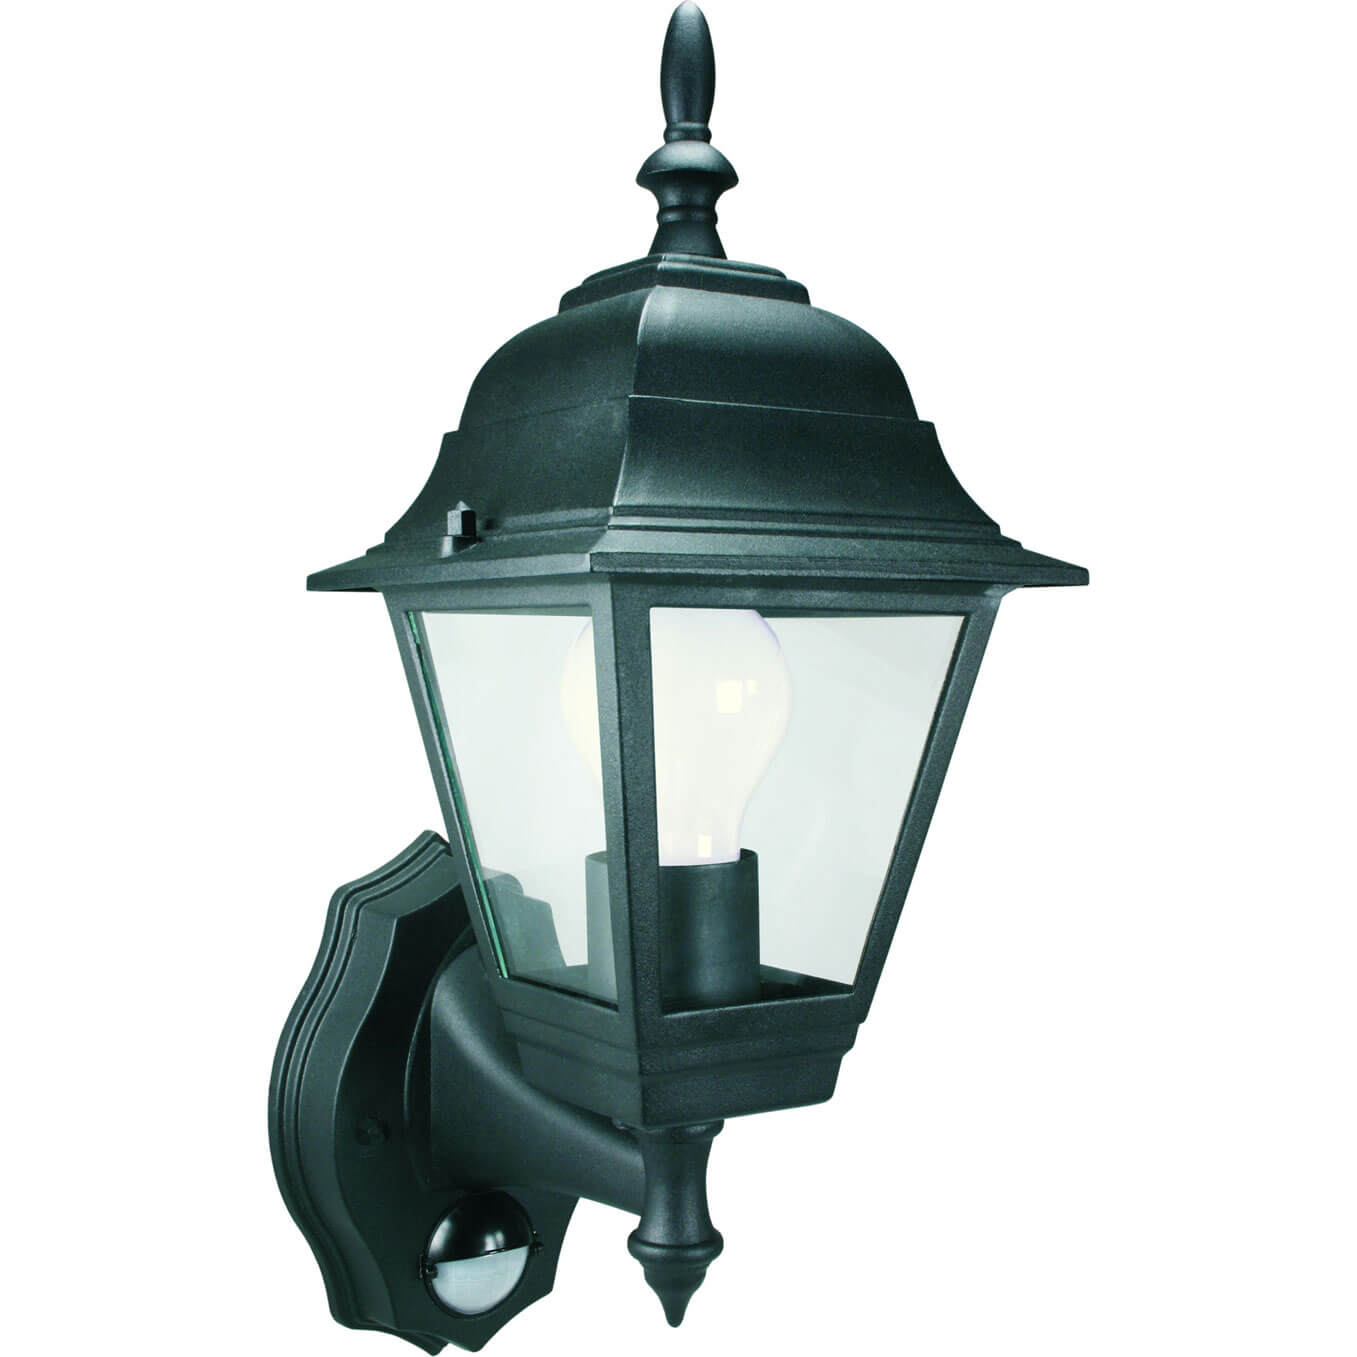 Byron ES94 4-Panel Coach Lantern with Motion Detector Black 240v